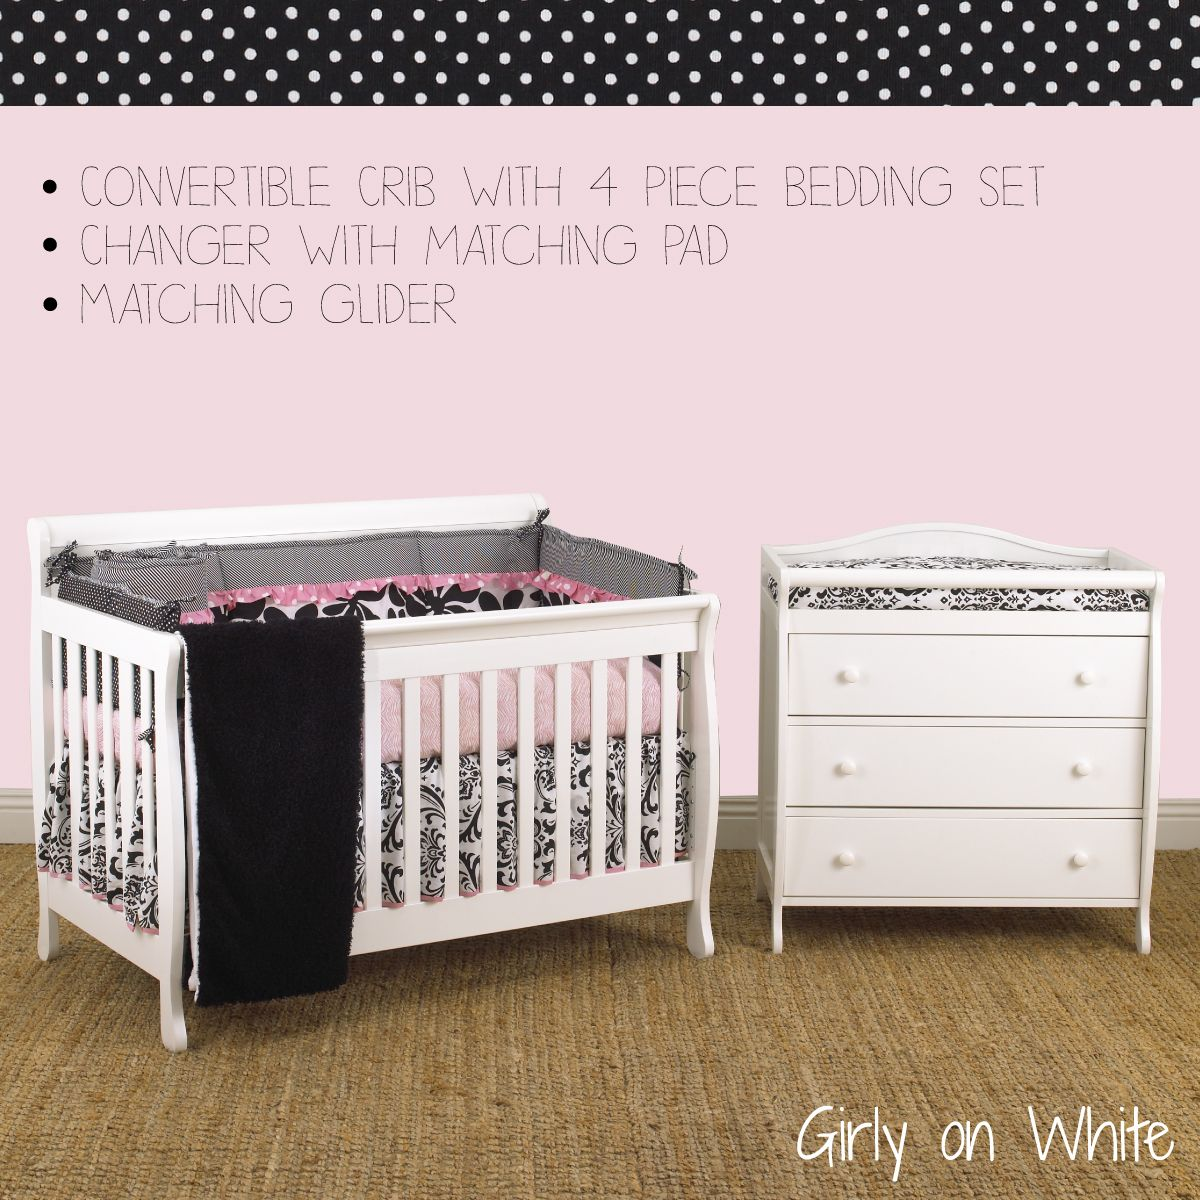 Nursery Furniture Packages http://www.cottontaledesigns.com/collections/furniture-package-w-glider-4pc-bedding-set